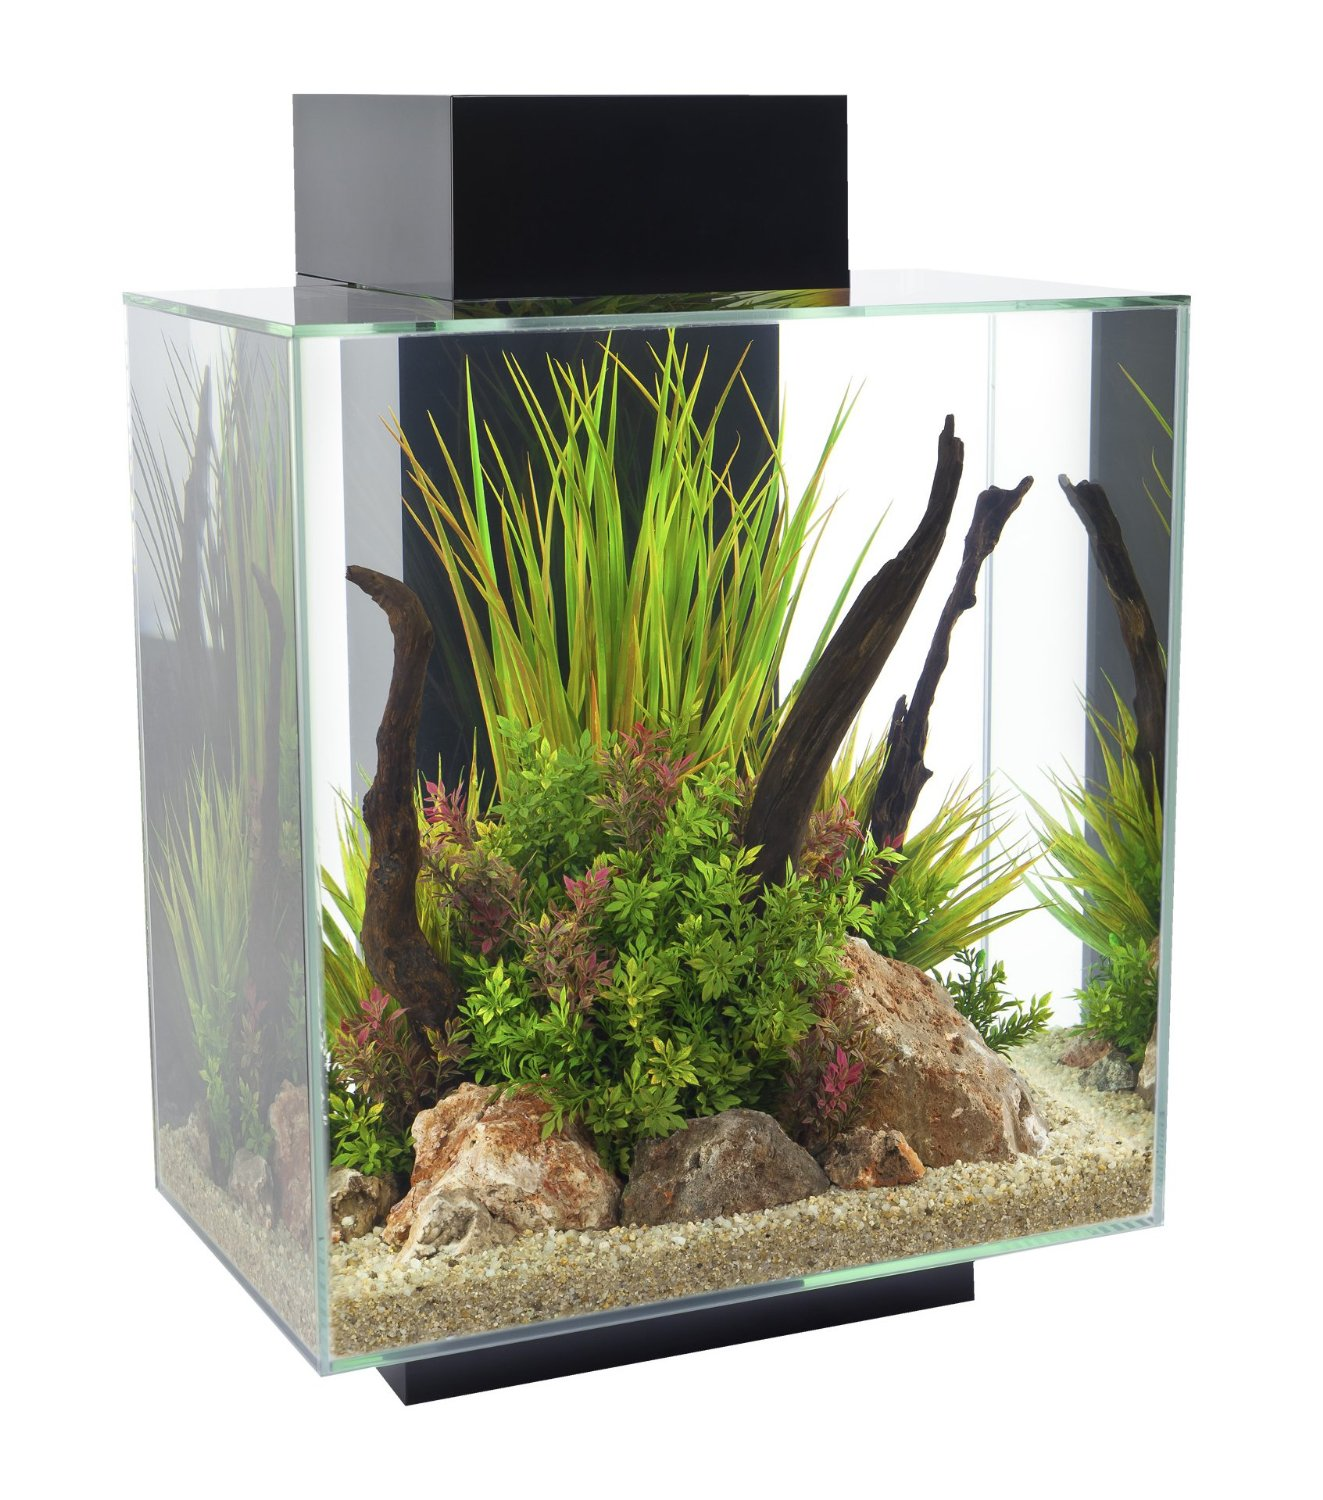 Fluval Amazon | Fluval Chi Aquarium 6.6 Gallons | Fluval Chi